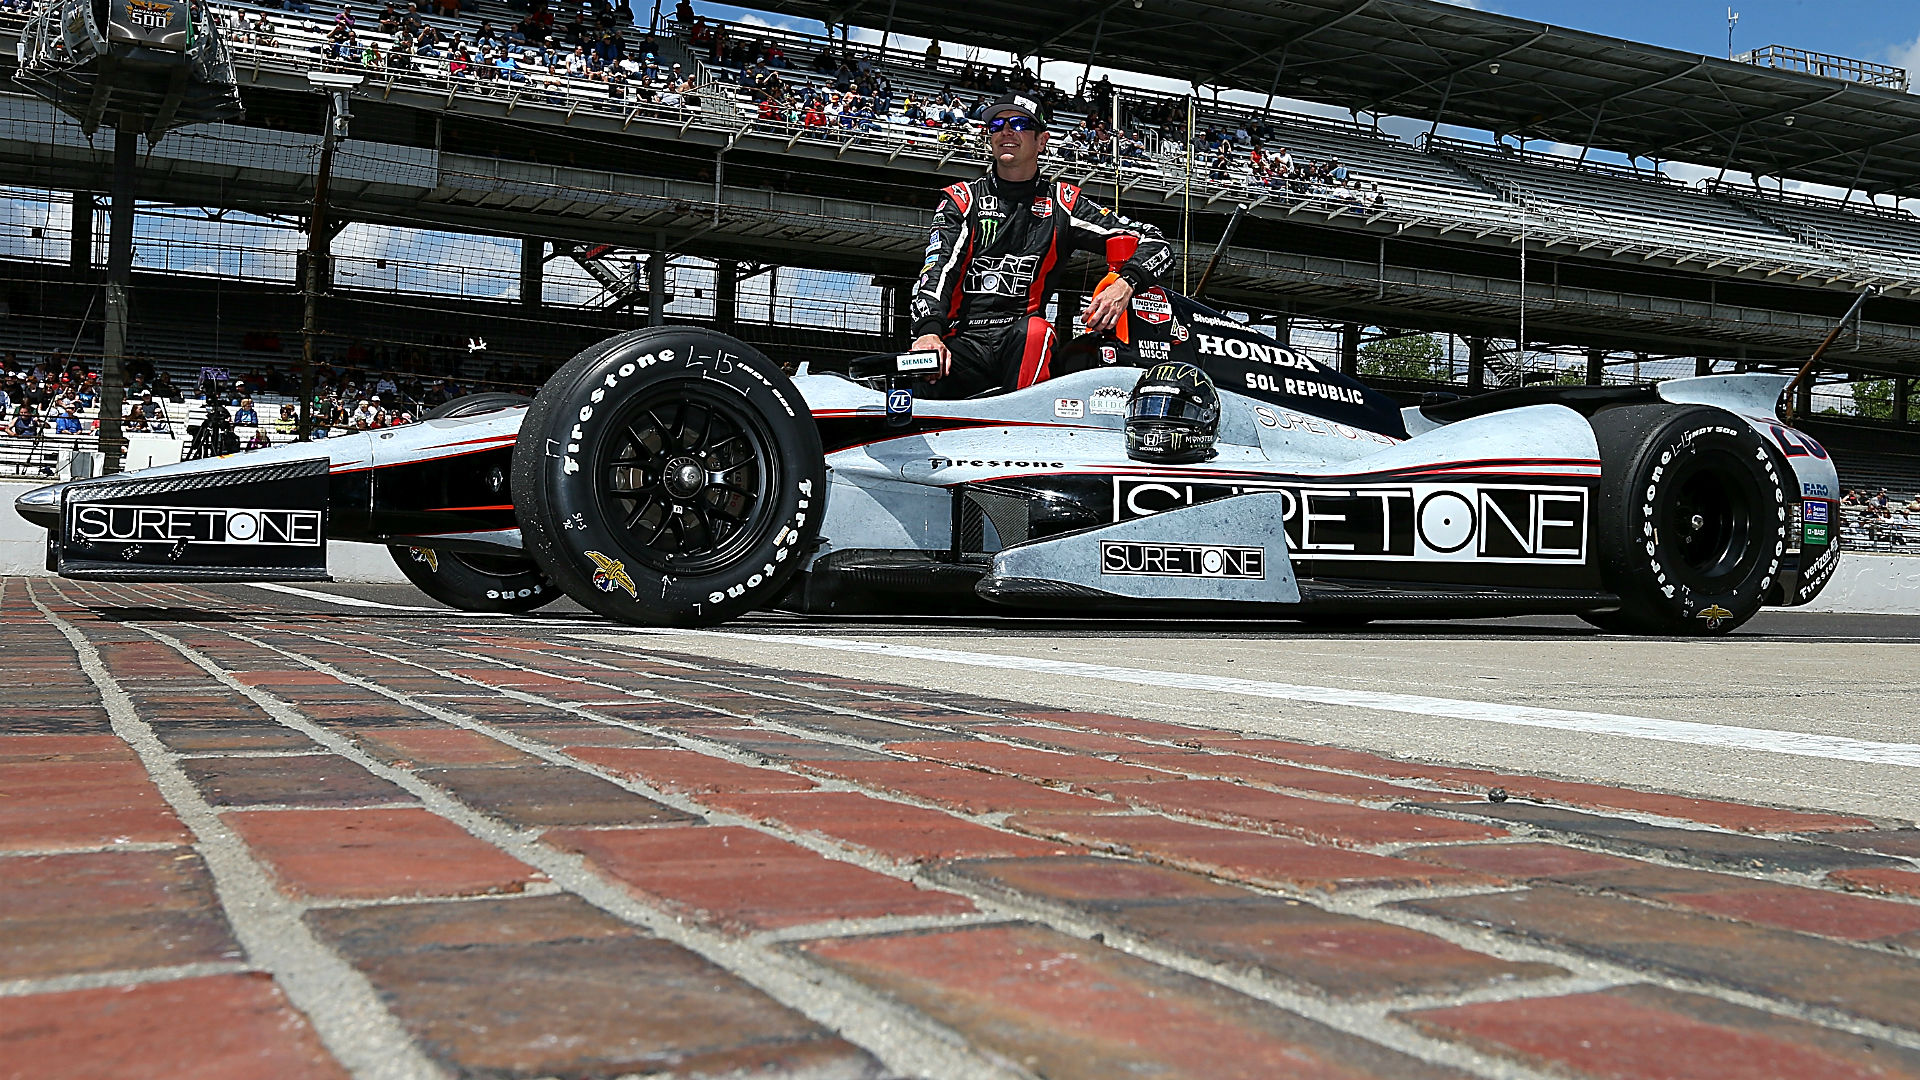 Kurt Busch raced in the Indy 500 in 2014